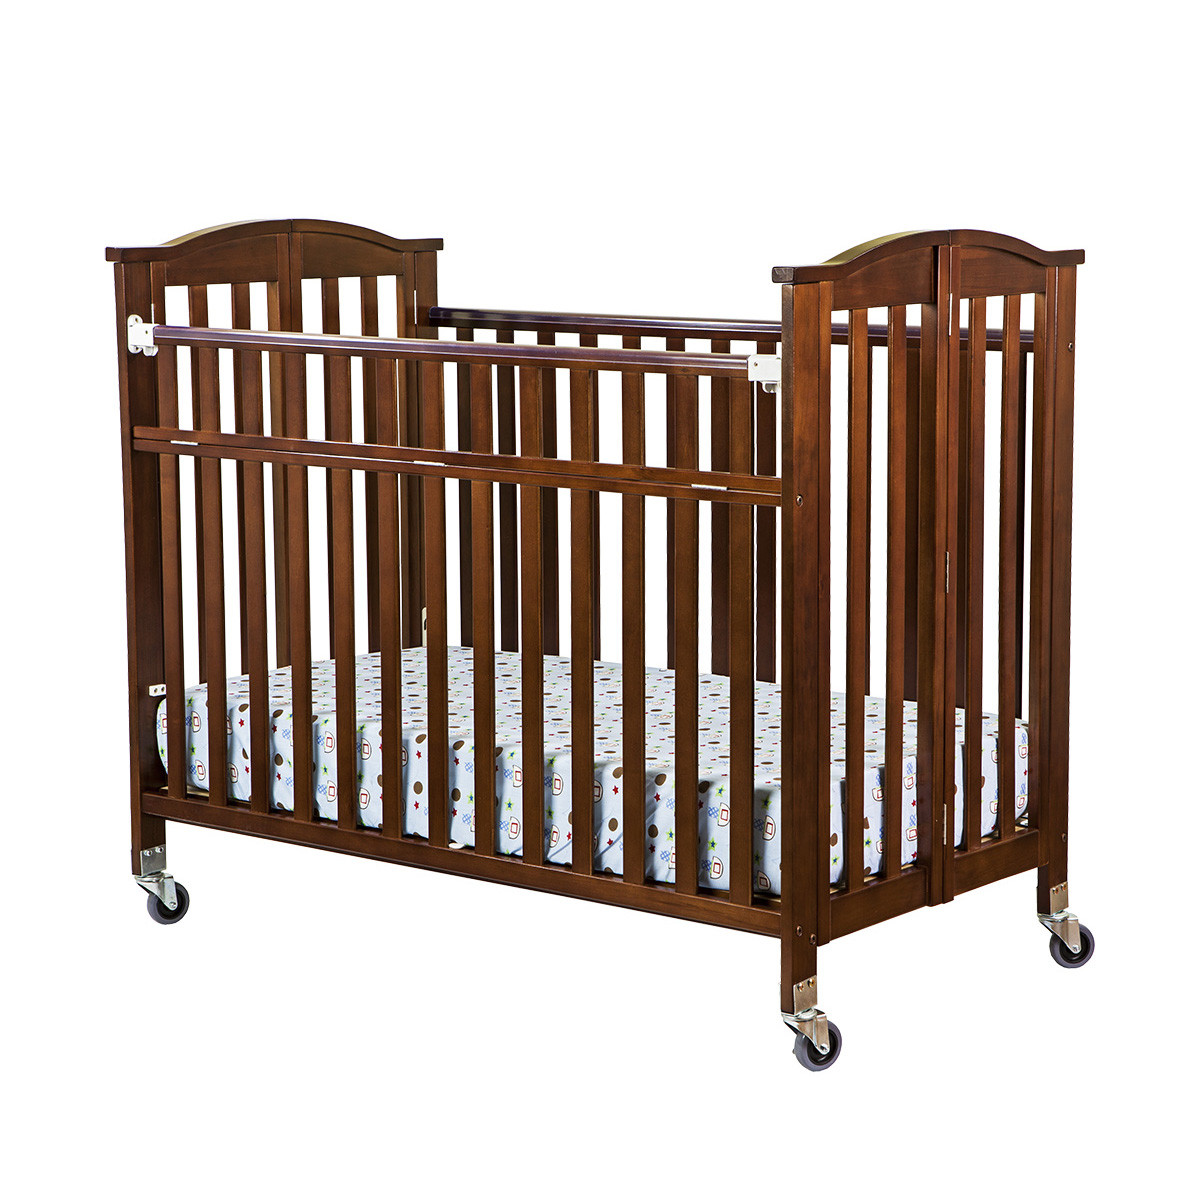 1200x1200 The Best Baby Crib Drawing Home Design Drawings Kaoaz